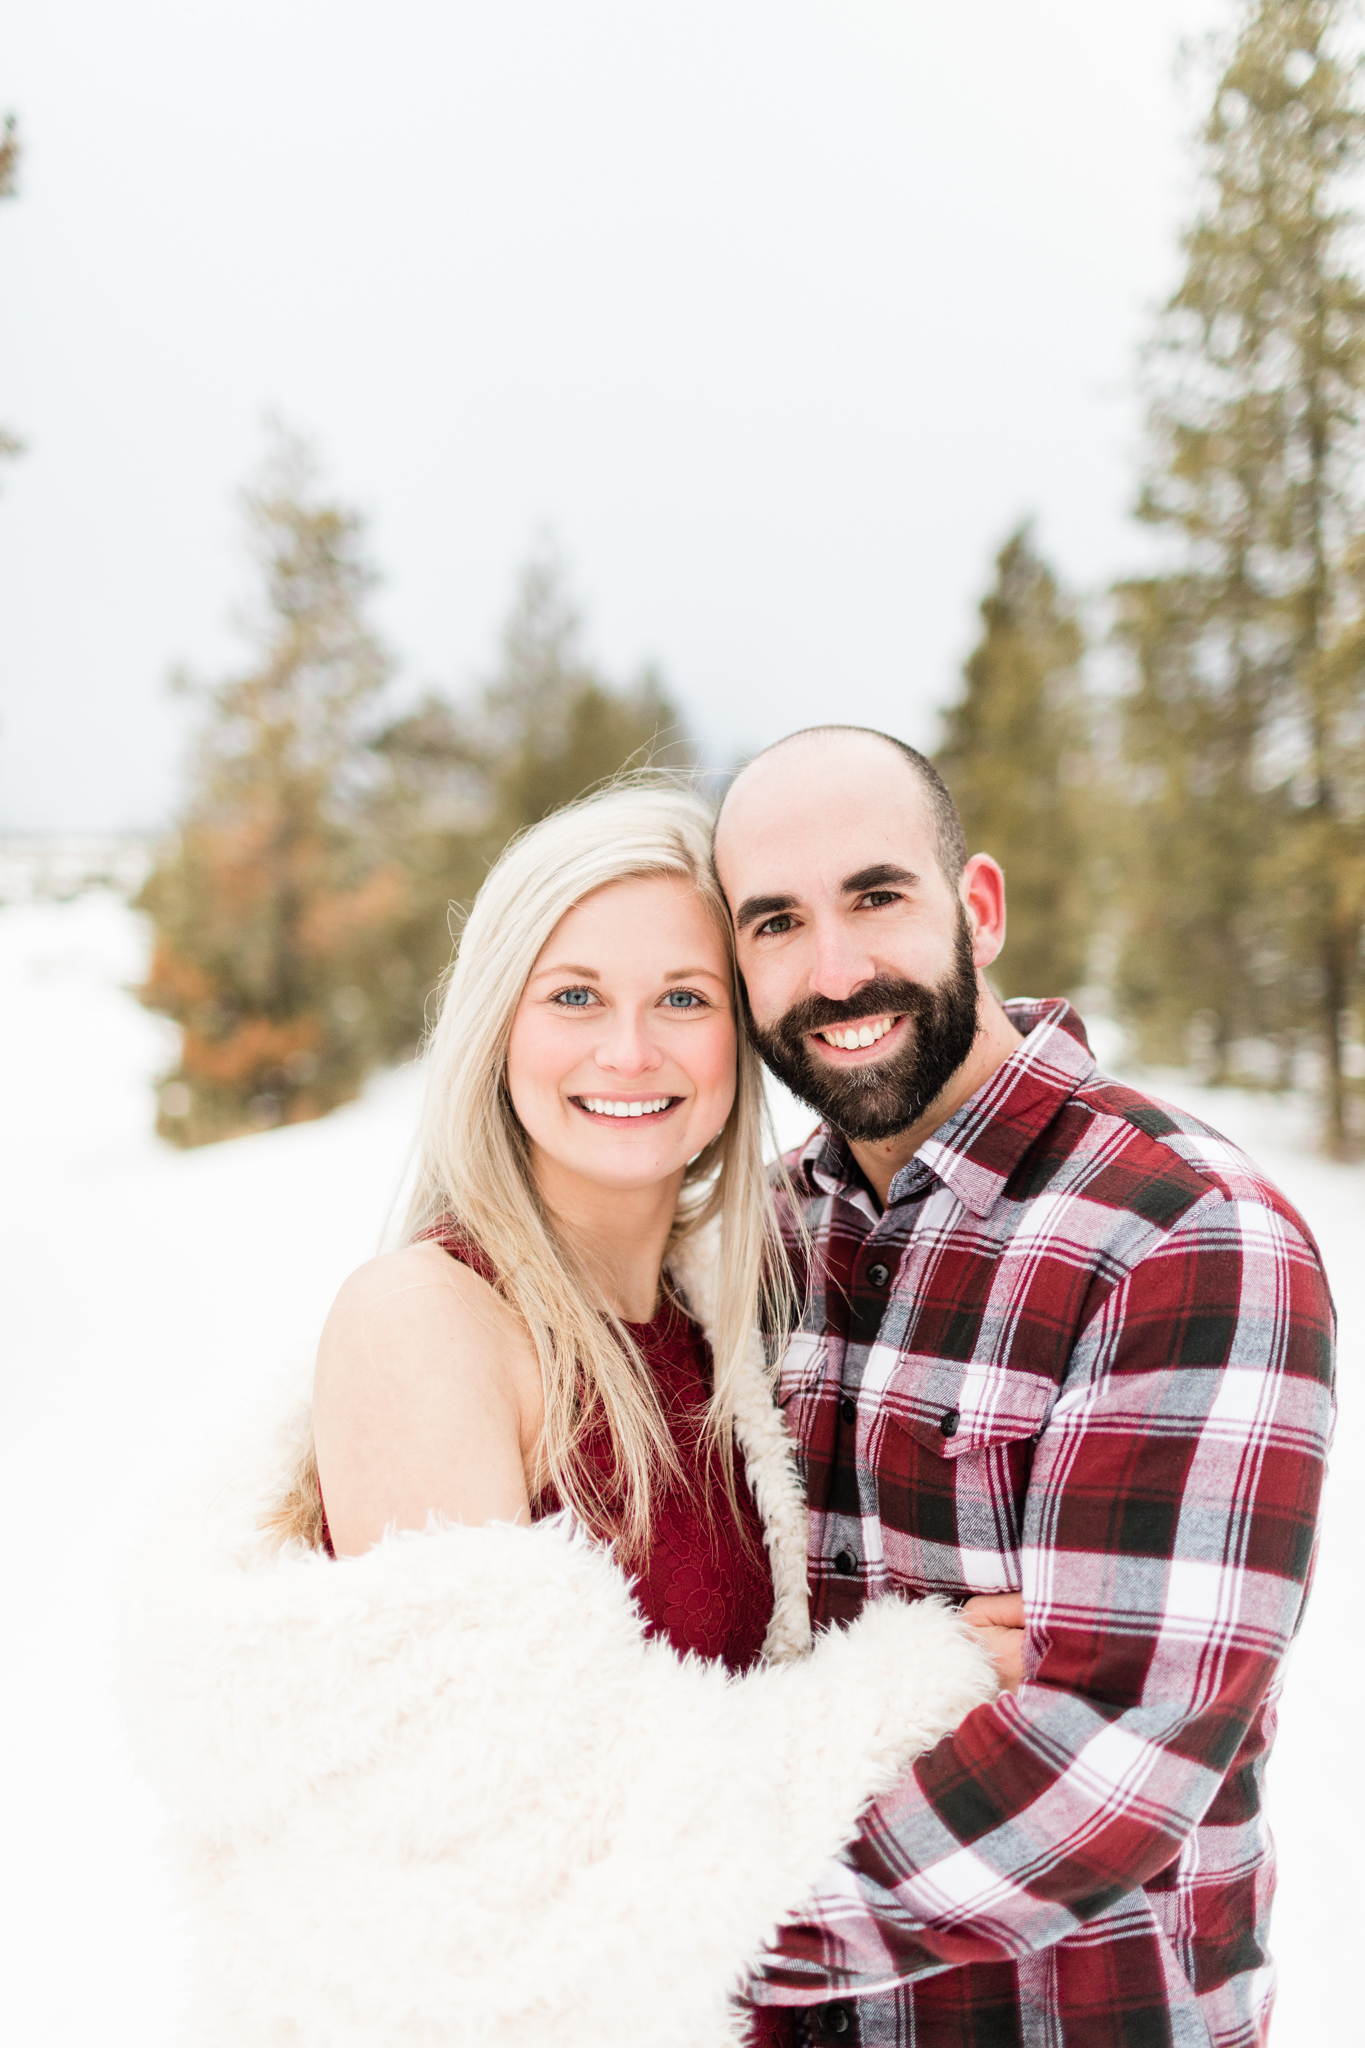 Windy_Point_Breckenridge_Winter_Proposal_23